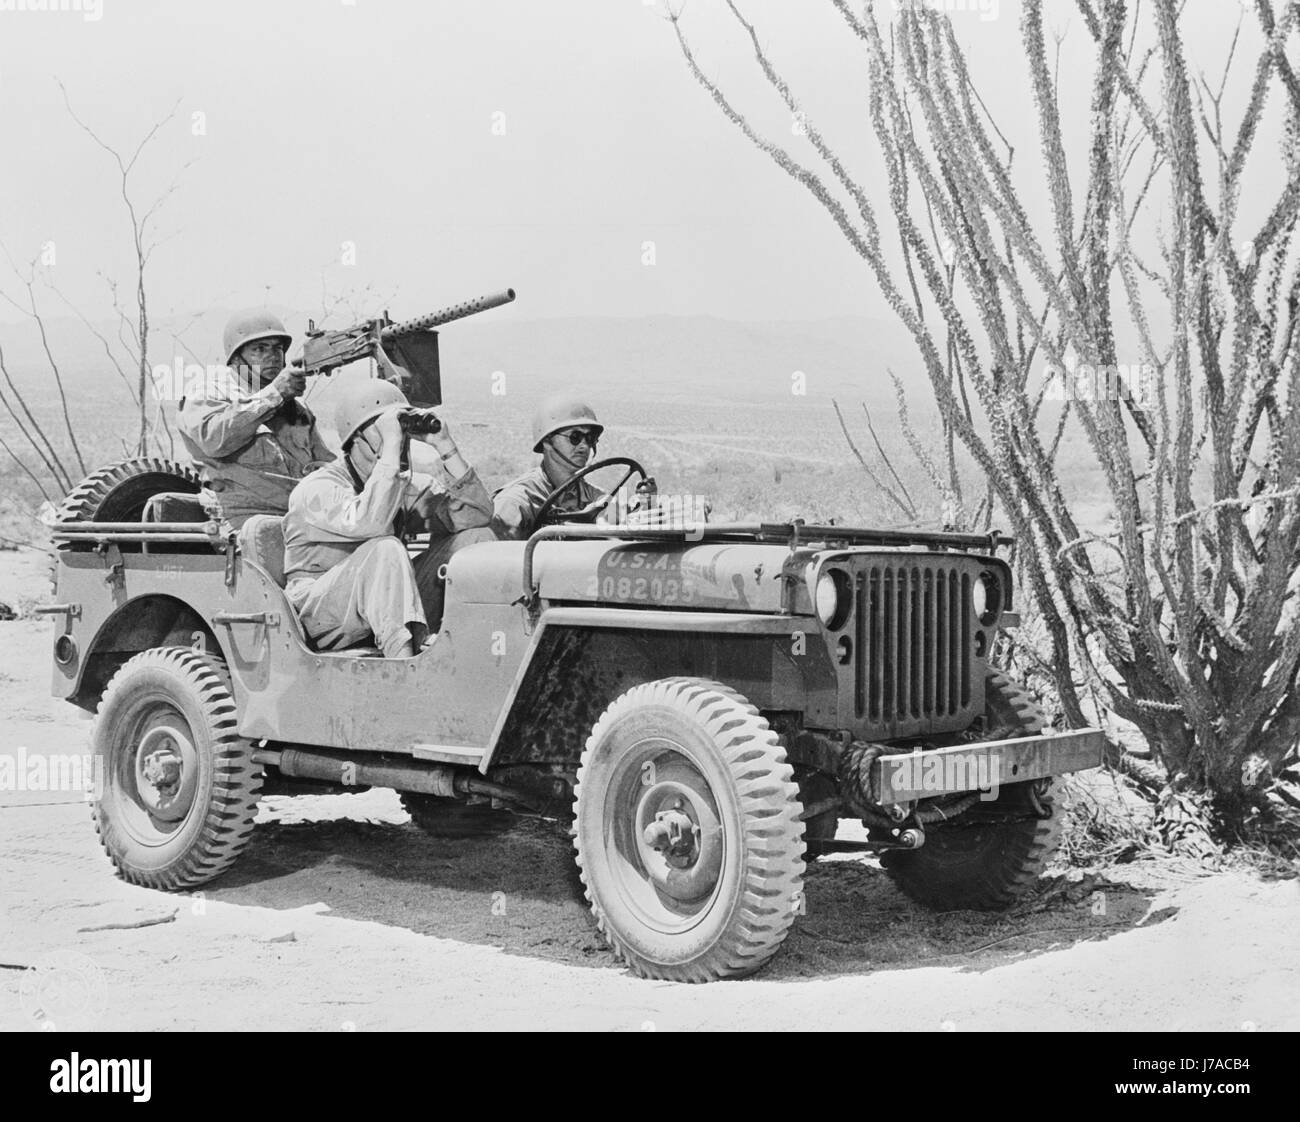 U.S. soldiers on a reconnaissance patrol in their jeep, 1942. - Stock Image